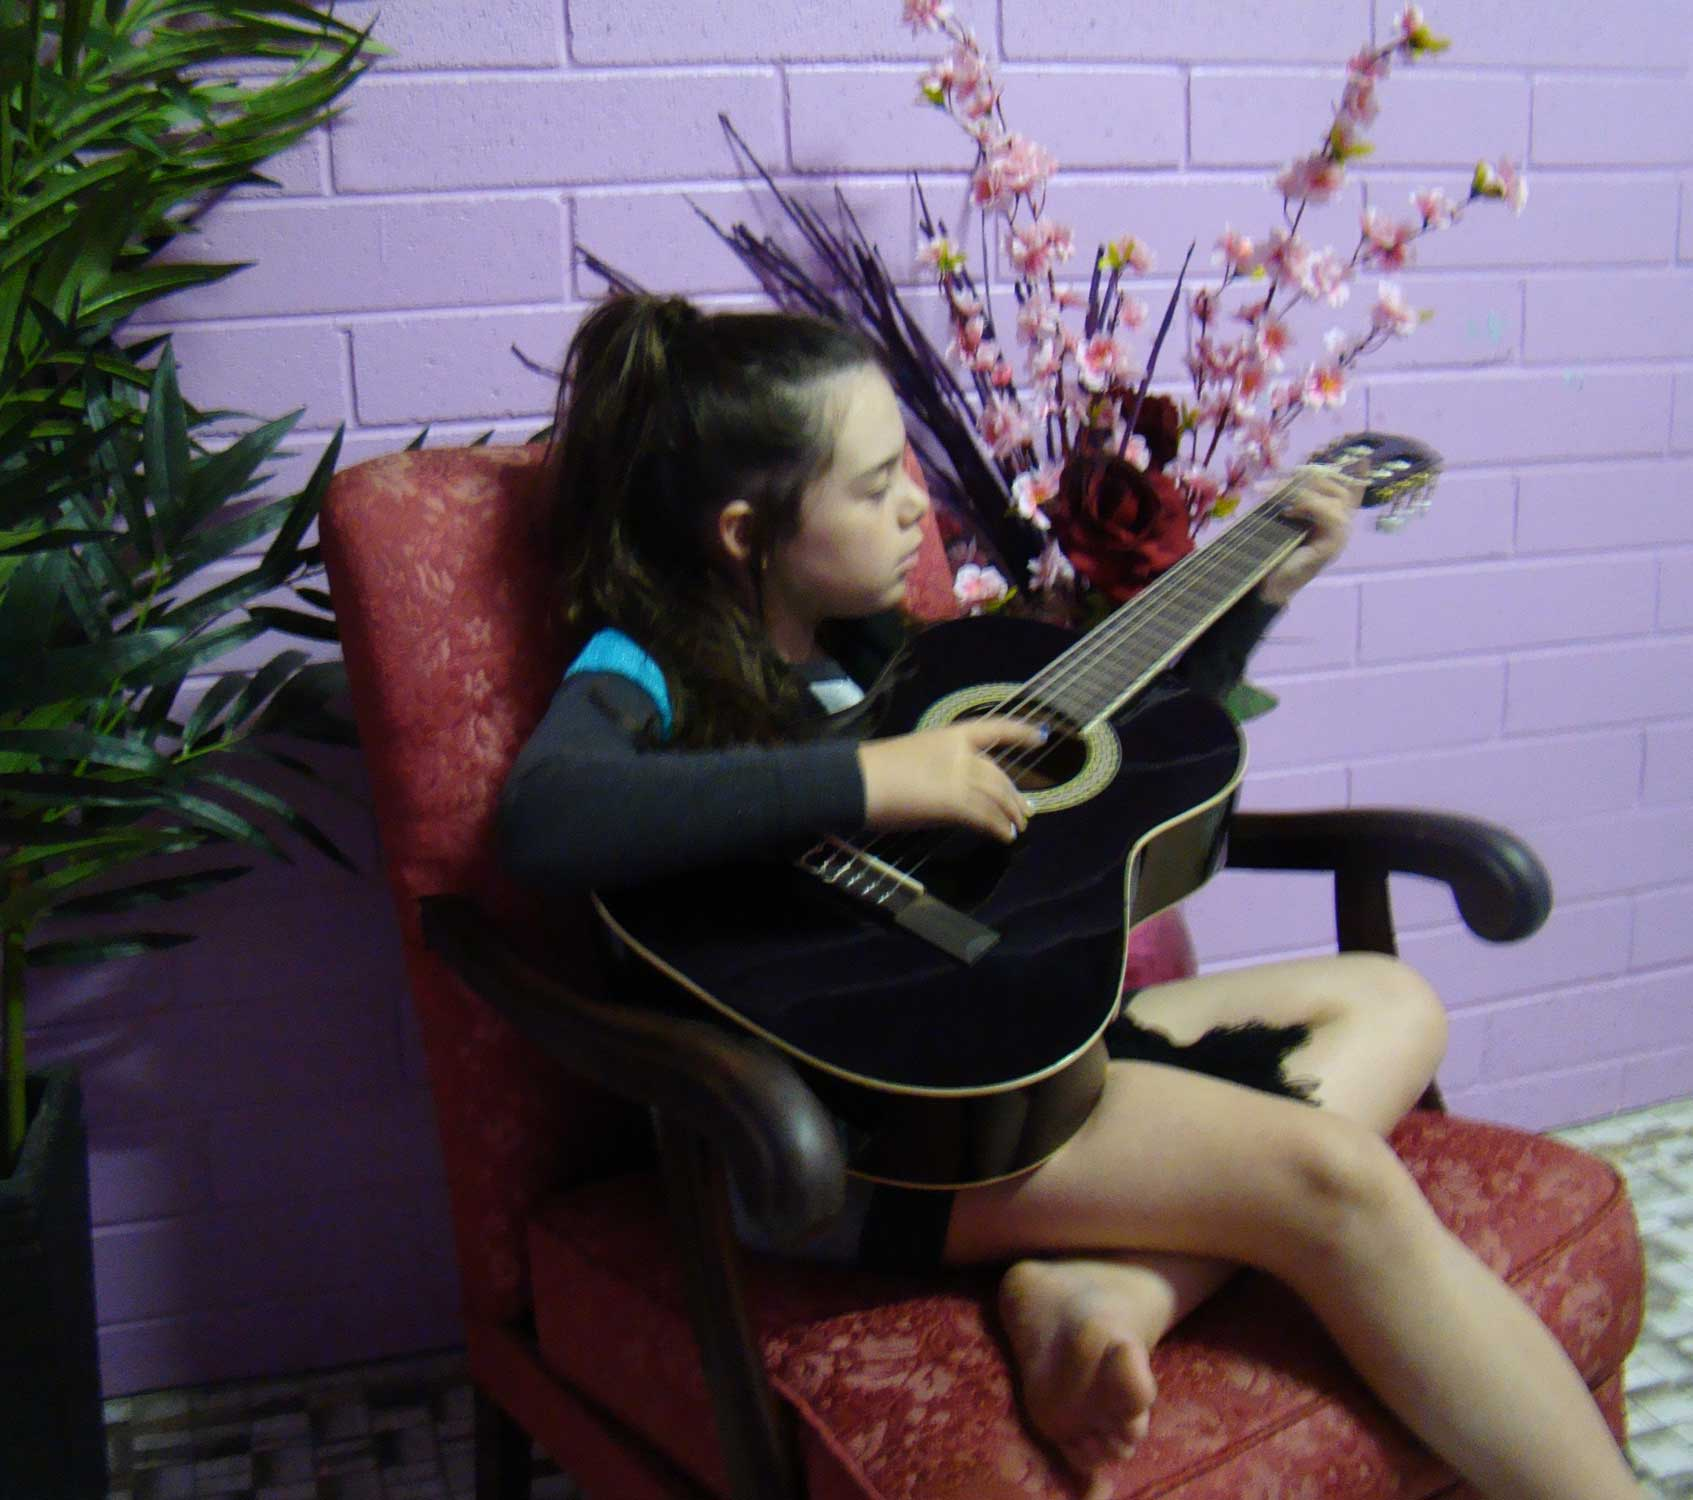 Tookii things to do with kids with guitar one of the activities for kids